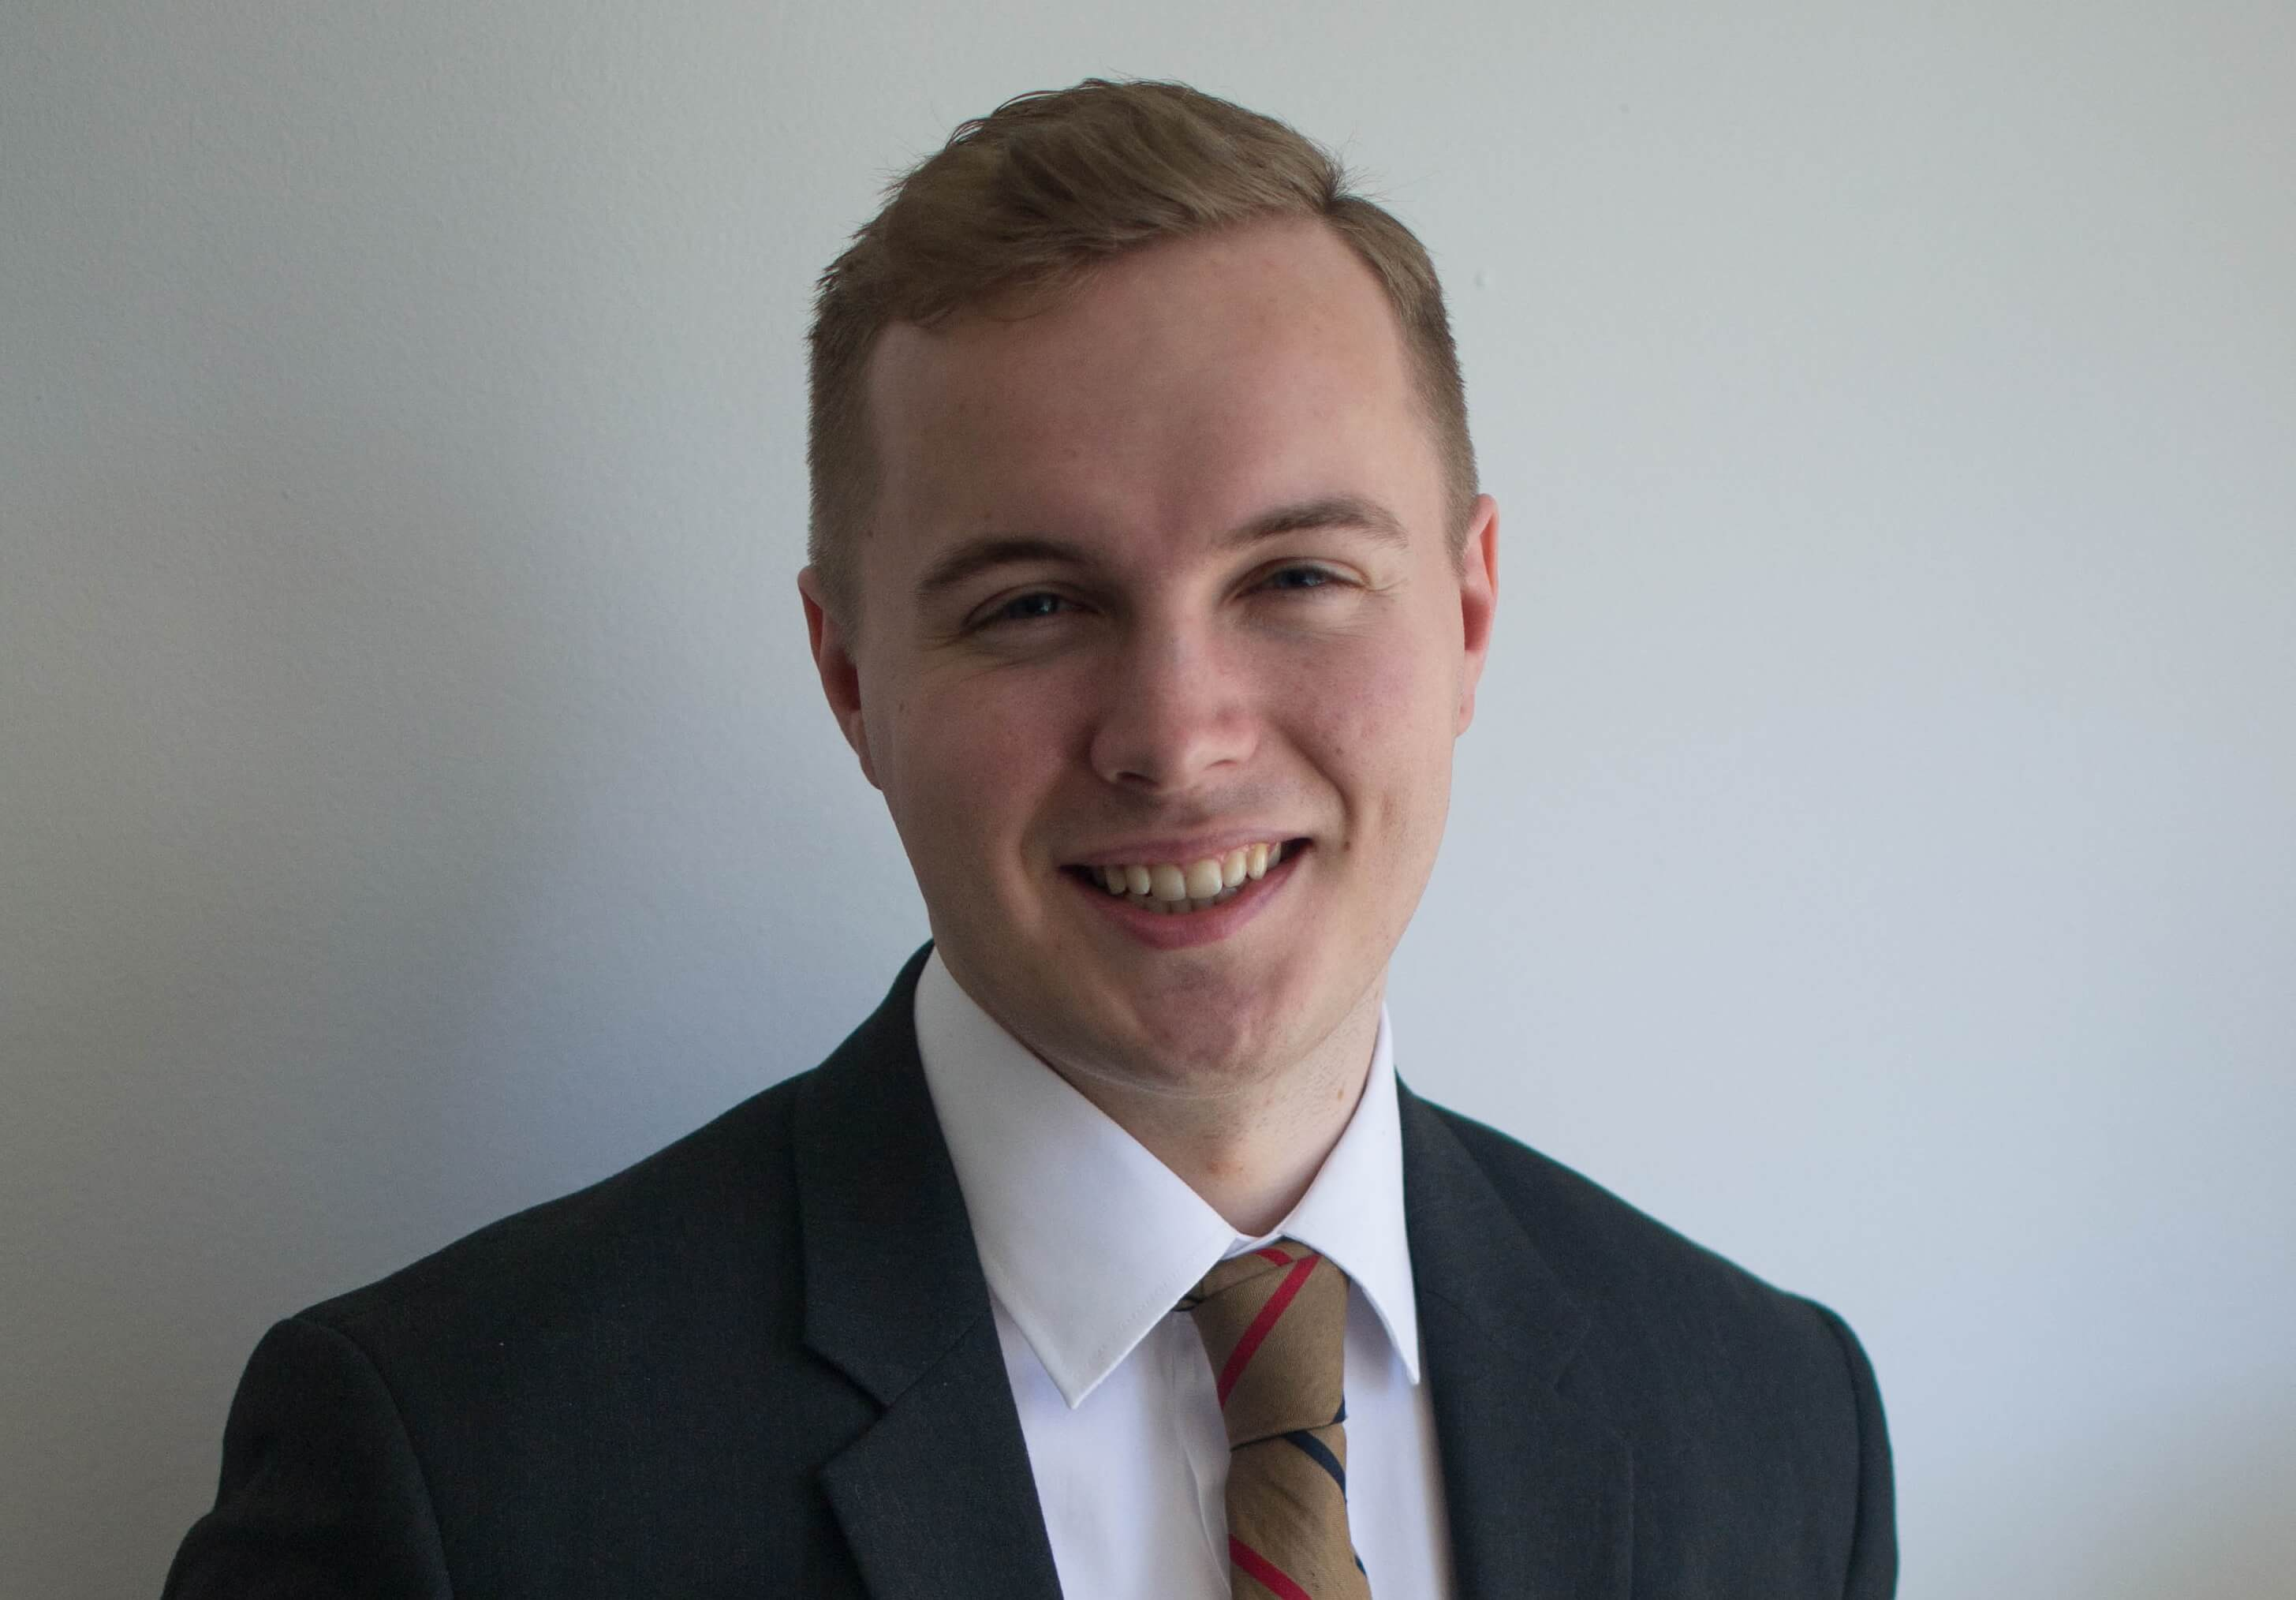 Thang Tax Law Welcomes Summer Student Nicholas Shatalow